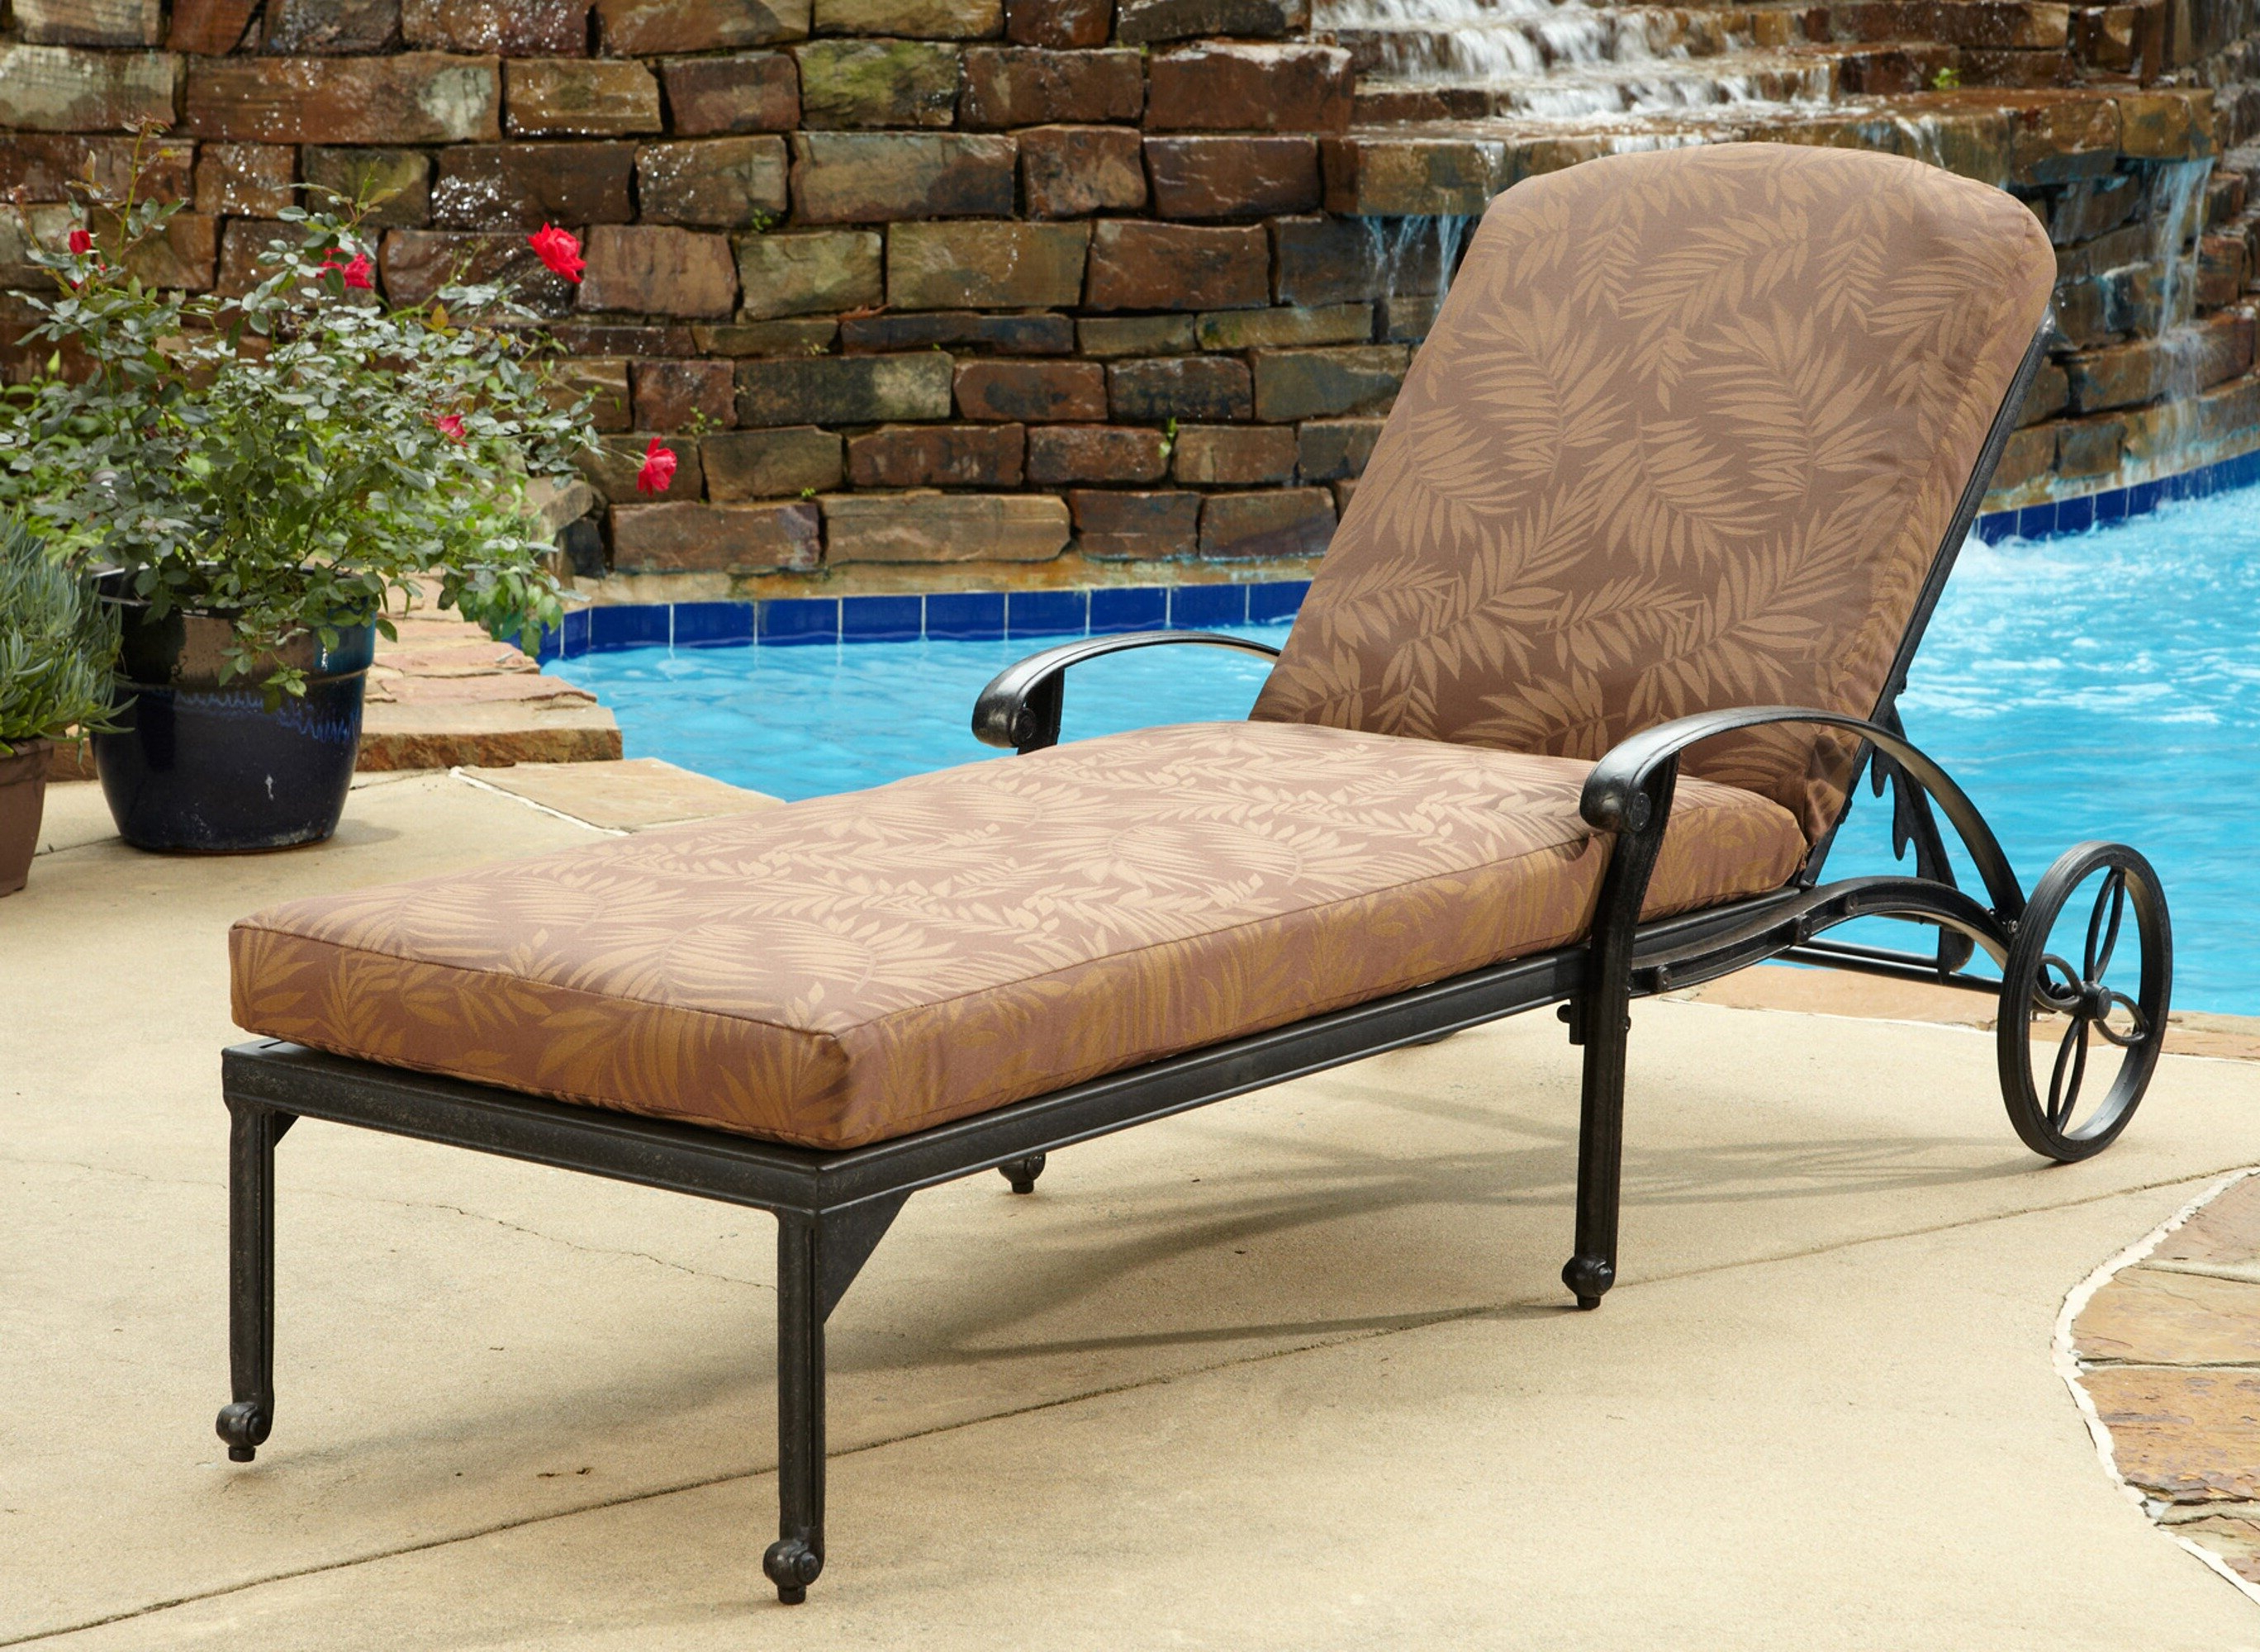 Trendy Lattice Outdoor Patio Pool Chaise Lounges With Wheels And Cushion Pertaining To One Allium Way Arrey Reclining Chaise Lounge With Cushion (View 12 of 25)